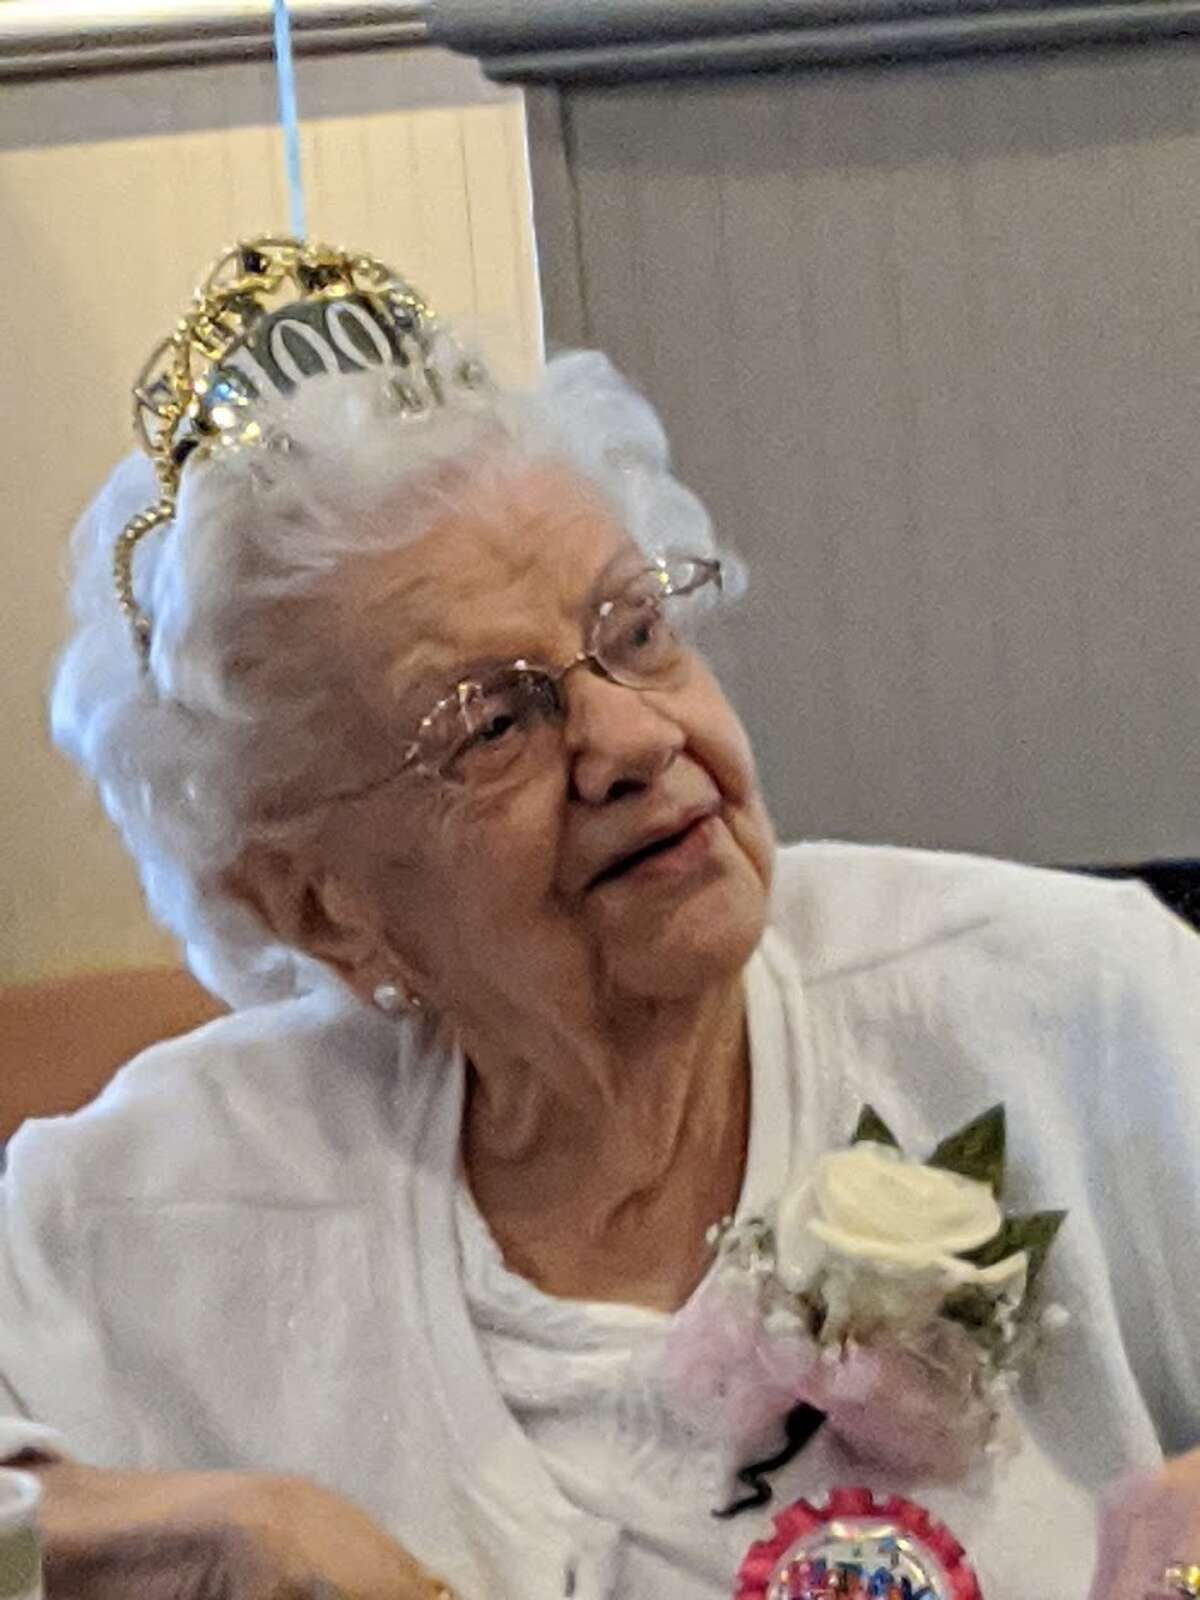 On Wednesday, August 26, 2020 a group of friends gathered to celebrate Adrienne DesJardins 100th birthday in Colonie.